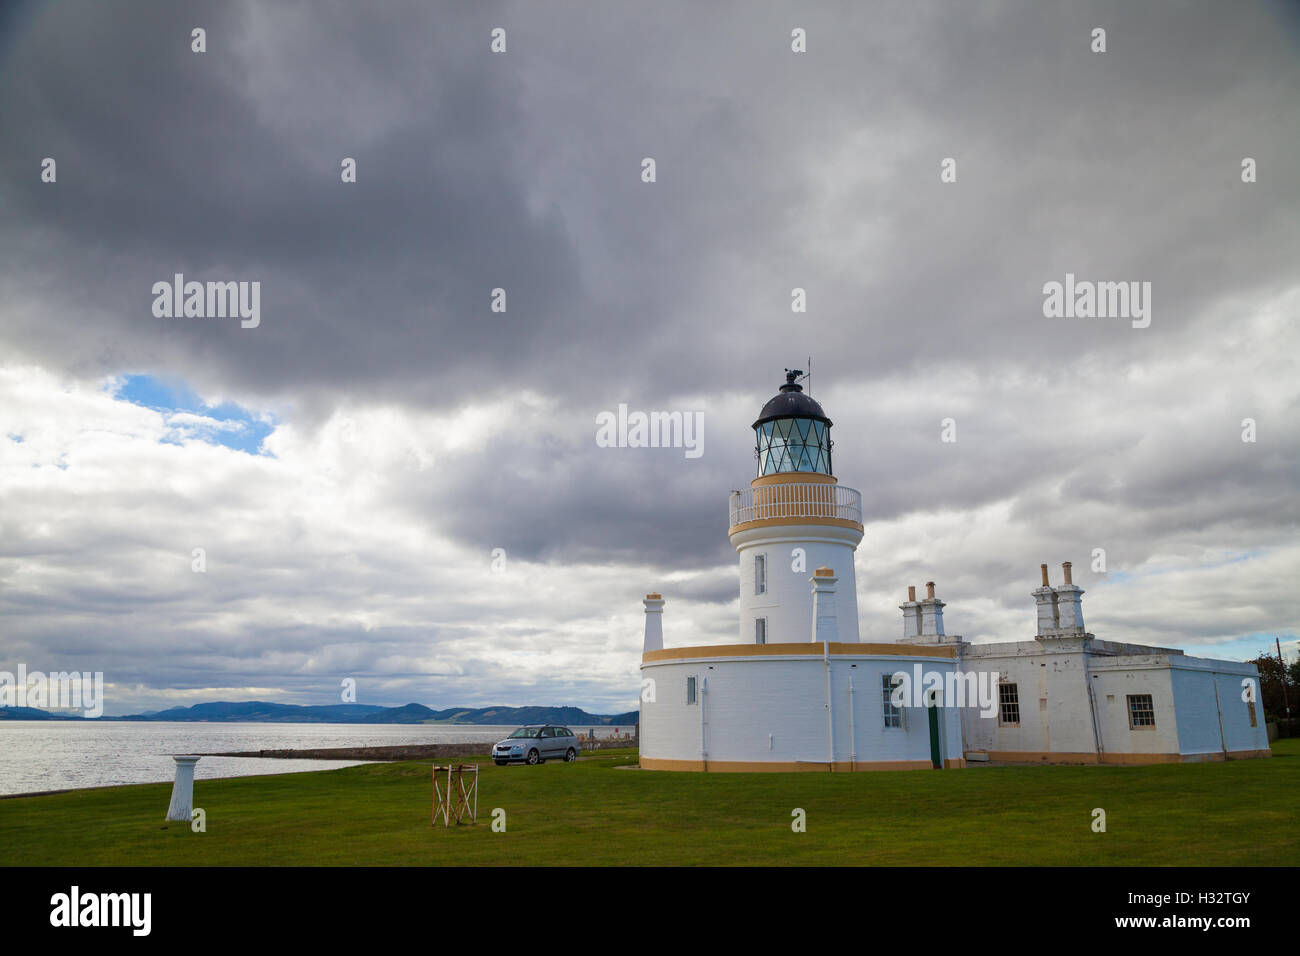 The Lighthouse at Chanonry Point on the Moray Firth, Scotland. - Stock Image